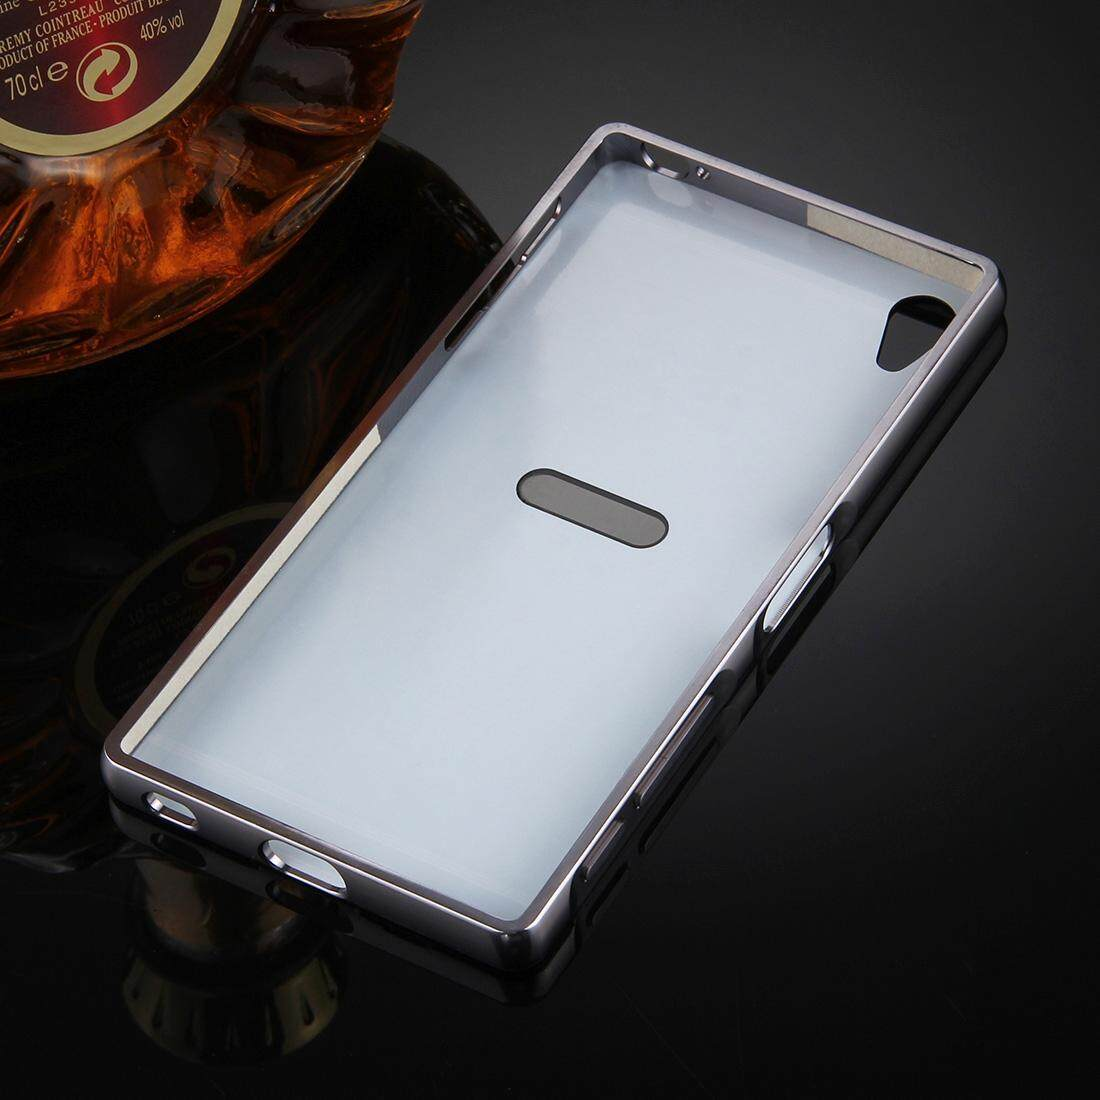 ... For Sony Xperia Z5 Premium Mirror Push Pull Back Shell Cover + Electroplating Bumper Frame Protective ...